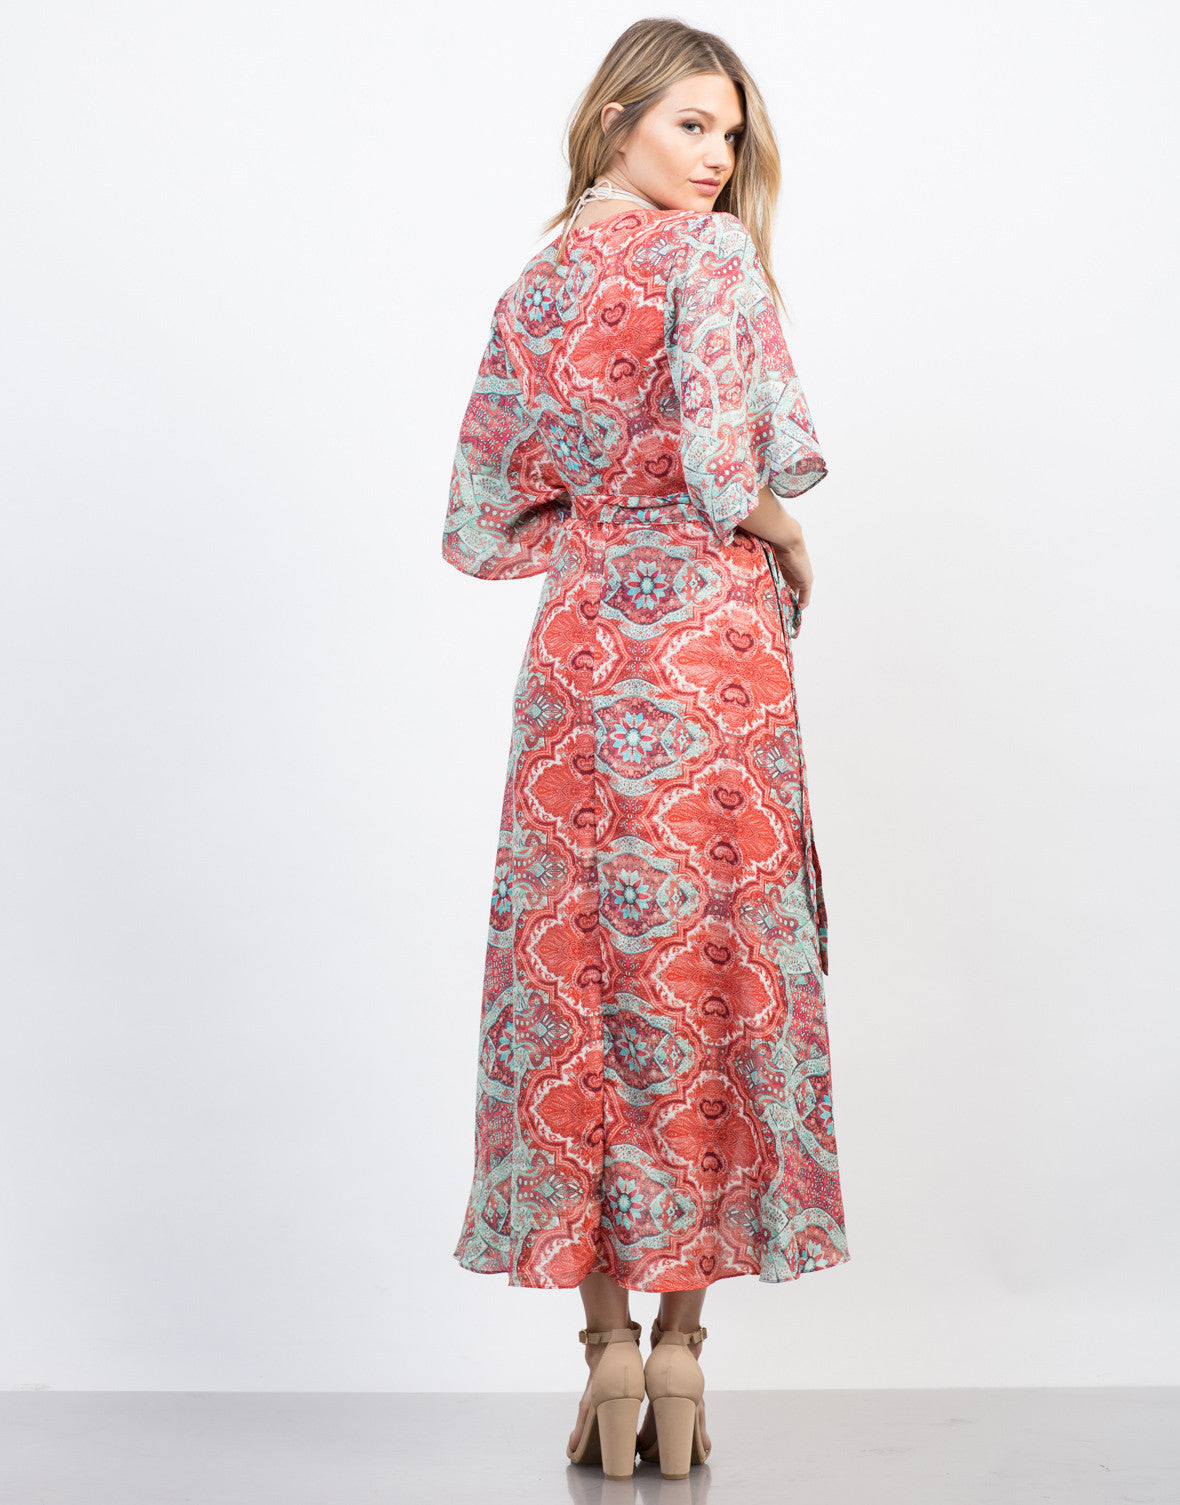 Back View of Breezy Paisley Dress